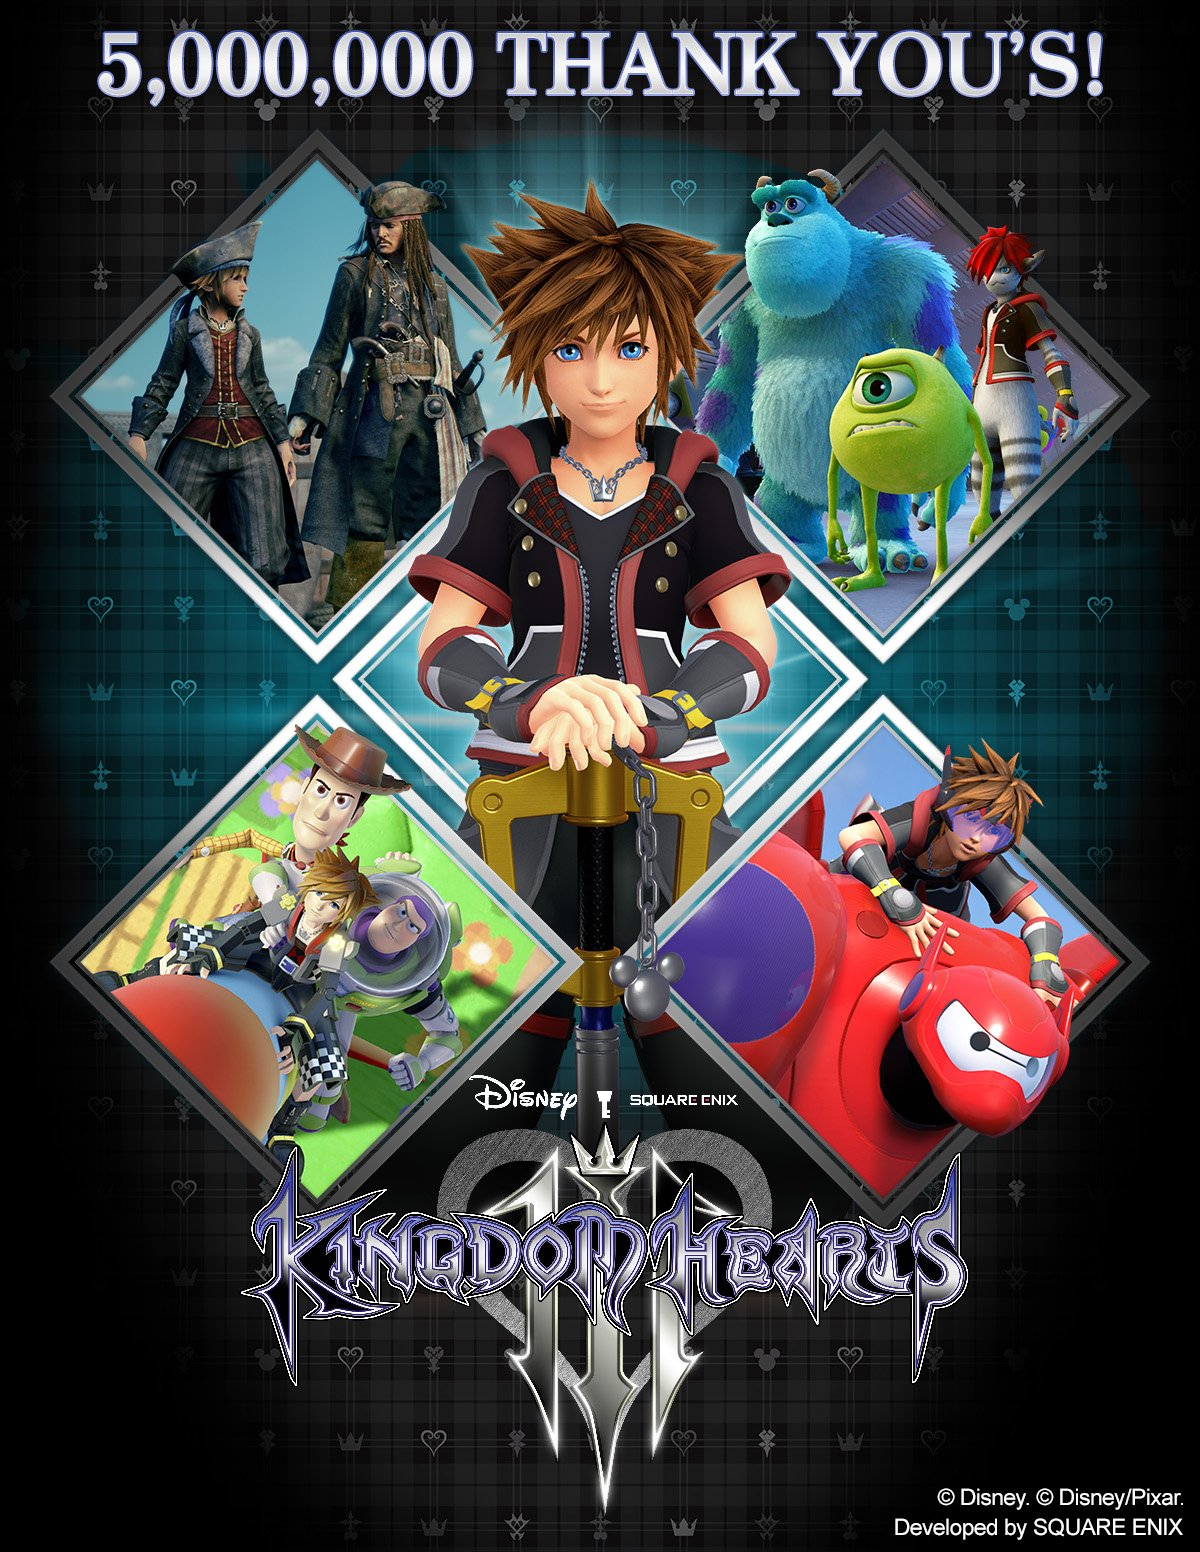 Kingdom Hearts III ships 5 million units worldwide